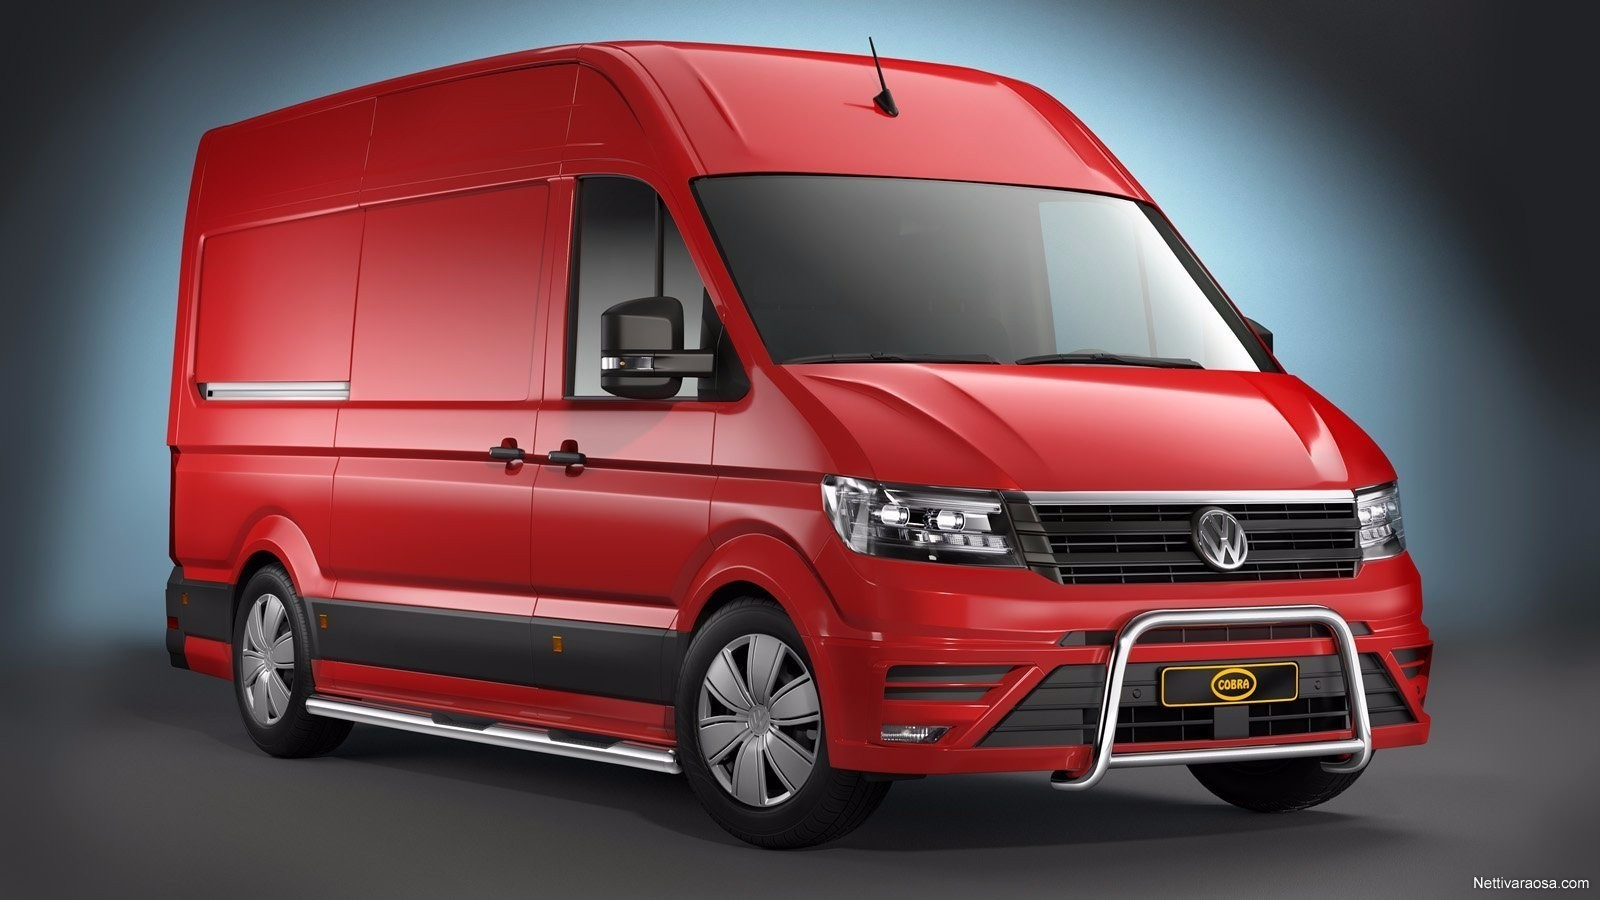 nettivaraosa vw crafter 2017 valorauta crafter 2017 valoraudat ja muut lis varusteet car. Black Bedroom Furniture Sets. Home Design Ideas